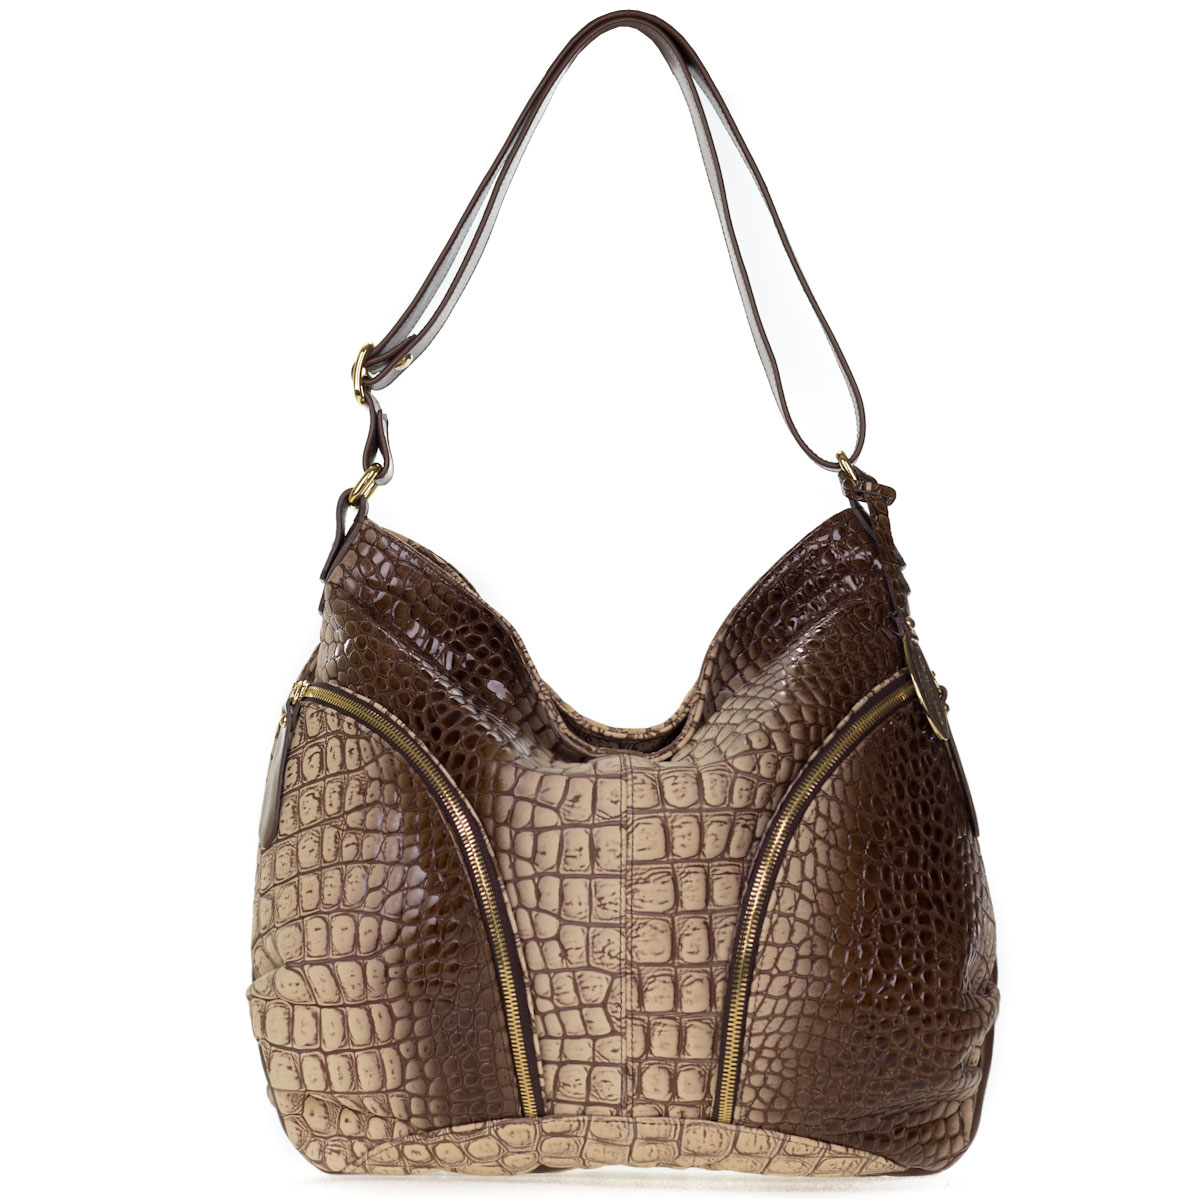 Giordano Italian Made Brown Croc Embossed Leather Large Hobo Bag With Pockets